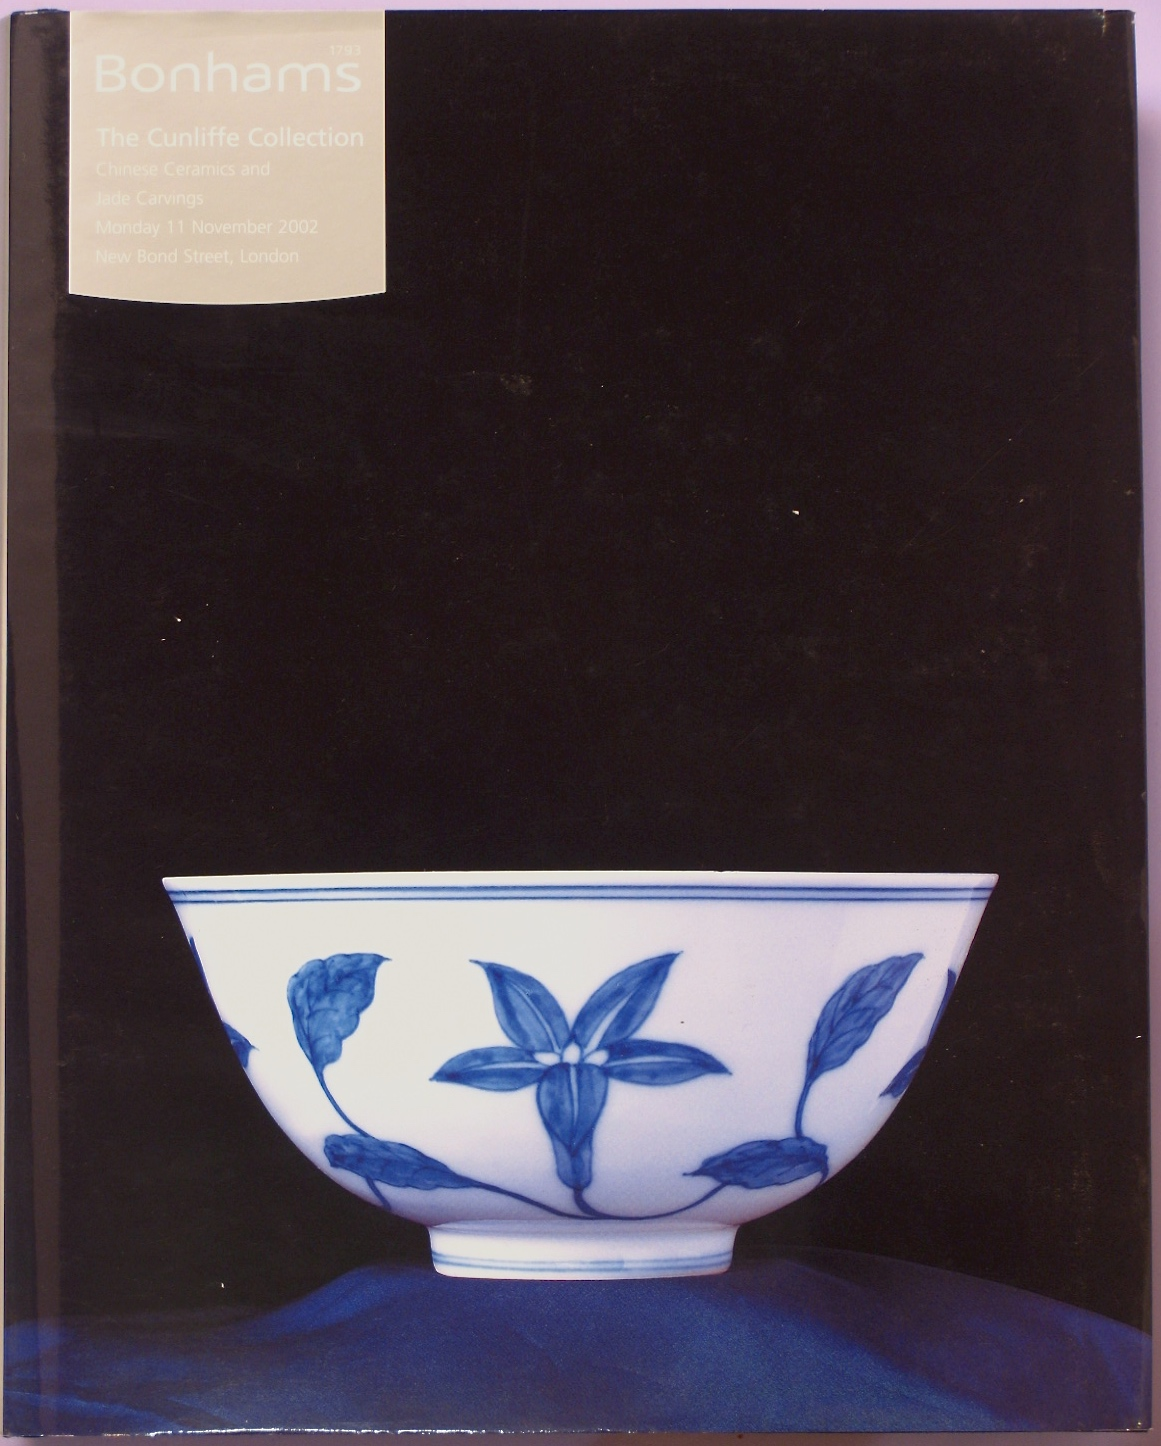 BL20021111: Bookshop: [2002] Bonhams London The Cunliffe Collection: Chinese Ceramics and Jade Carvings